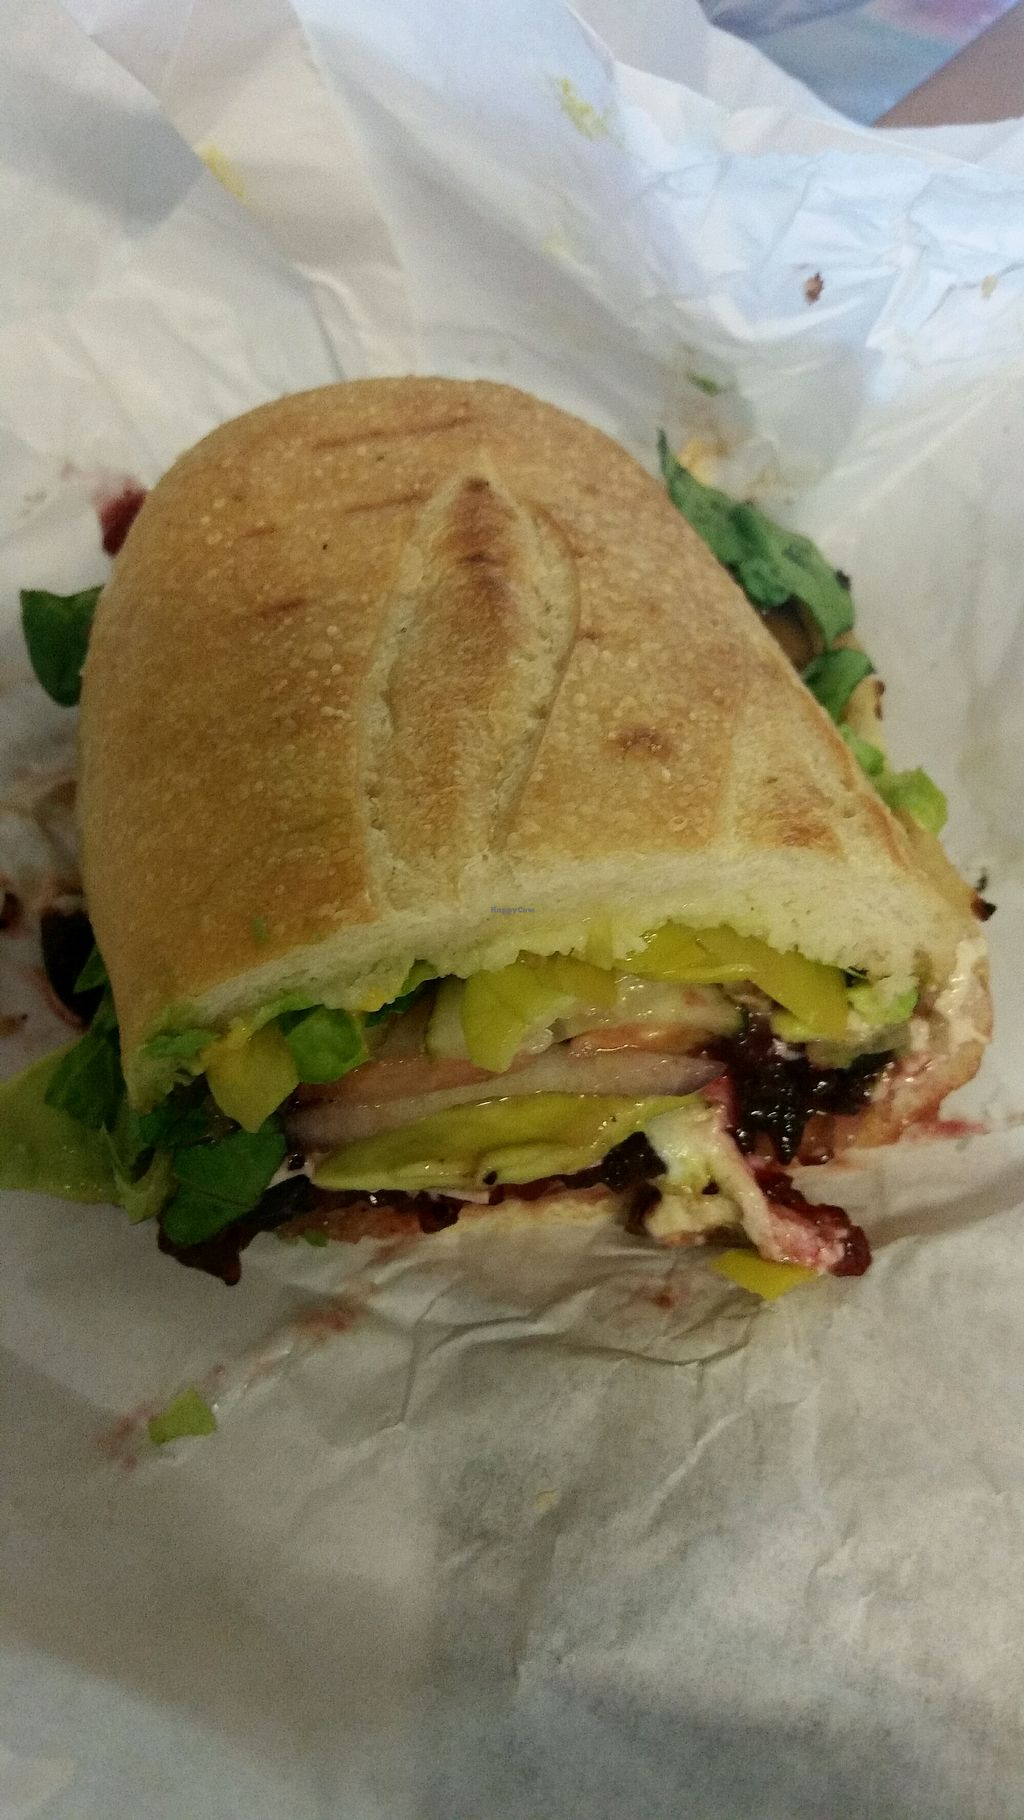 """Photo of The Best Little Sandwich Shop - Eureka Way  by <a href=""""/members/profile/Conniemm"""">Conniemm</a> <br/>Hello Kitty Karli <br/> August 25, 2017  - <a href='/contact/abuse/image/37963/296911'>Report</a>"""